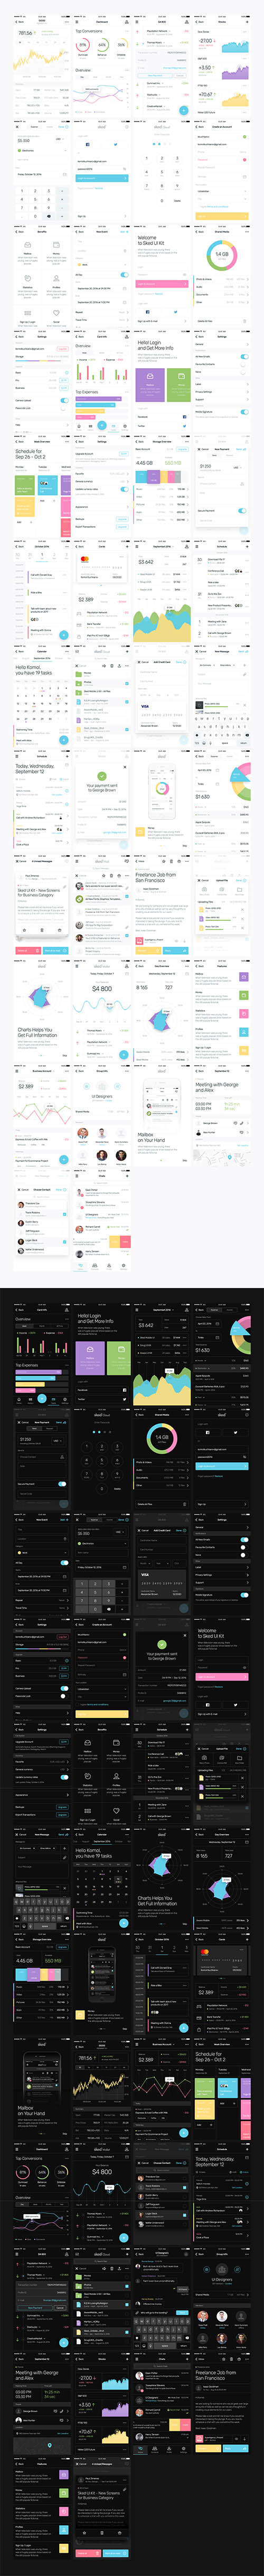 Sked Mobile UI Kit - 40+ Light & dark screens for mobile